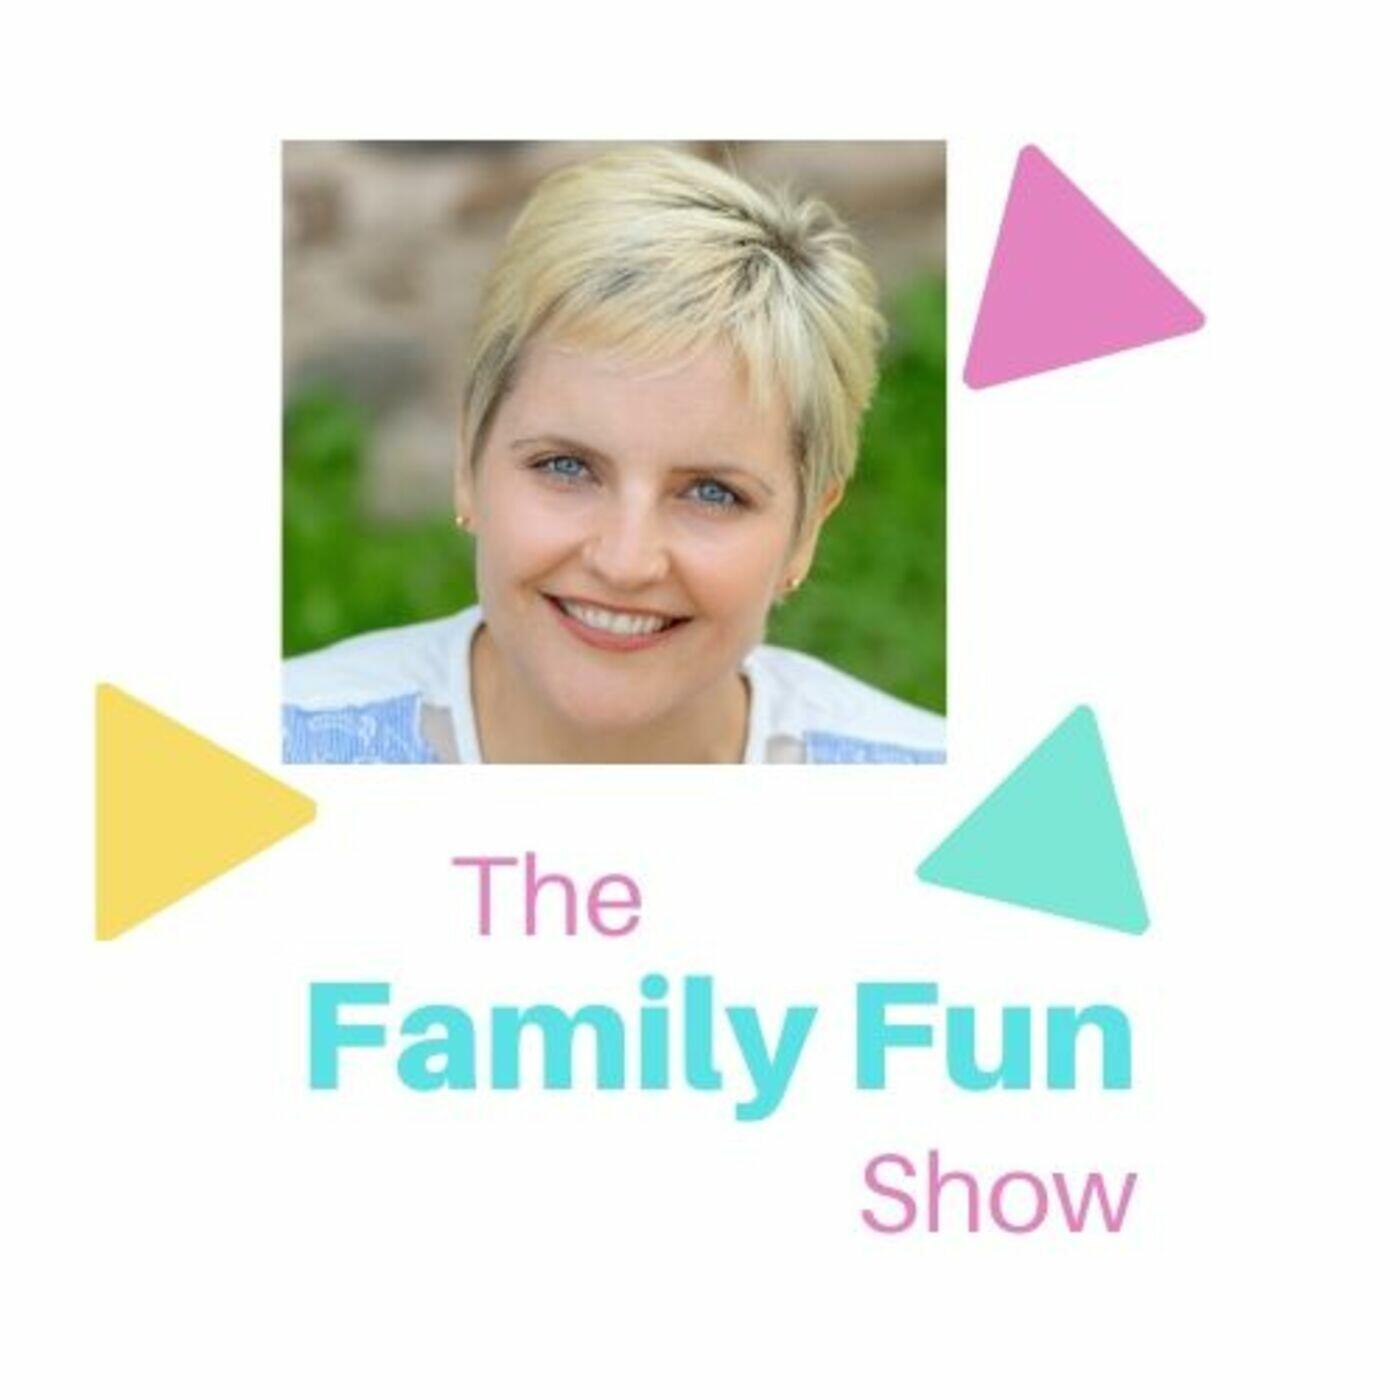 The Family Fun Show!